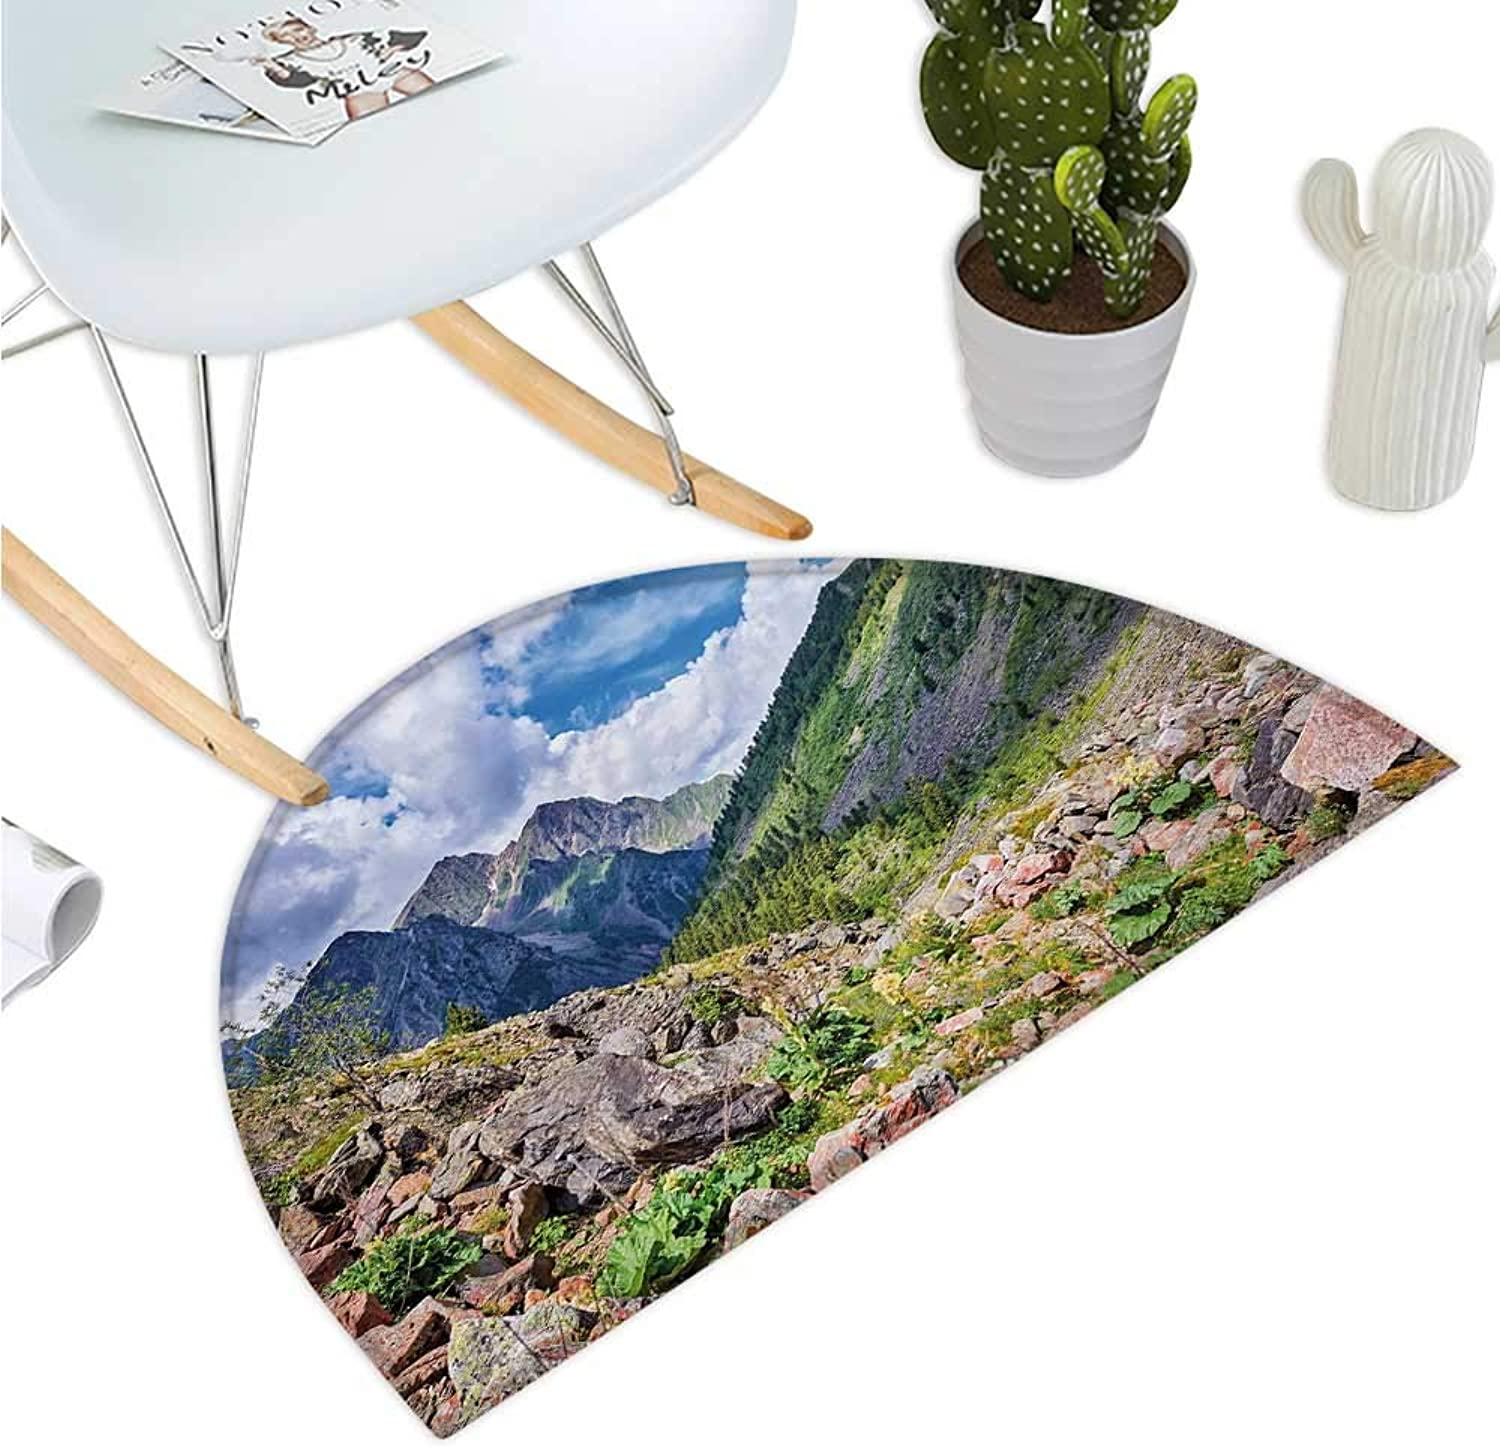 Landscape Semicircular Cushion Mountains Wild Rhubarb Natural View Eastern Siberia Scenic Scenery Cloudy Sky Entry Door Mat H 39.3  xD 59  Multicolor